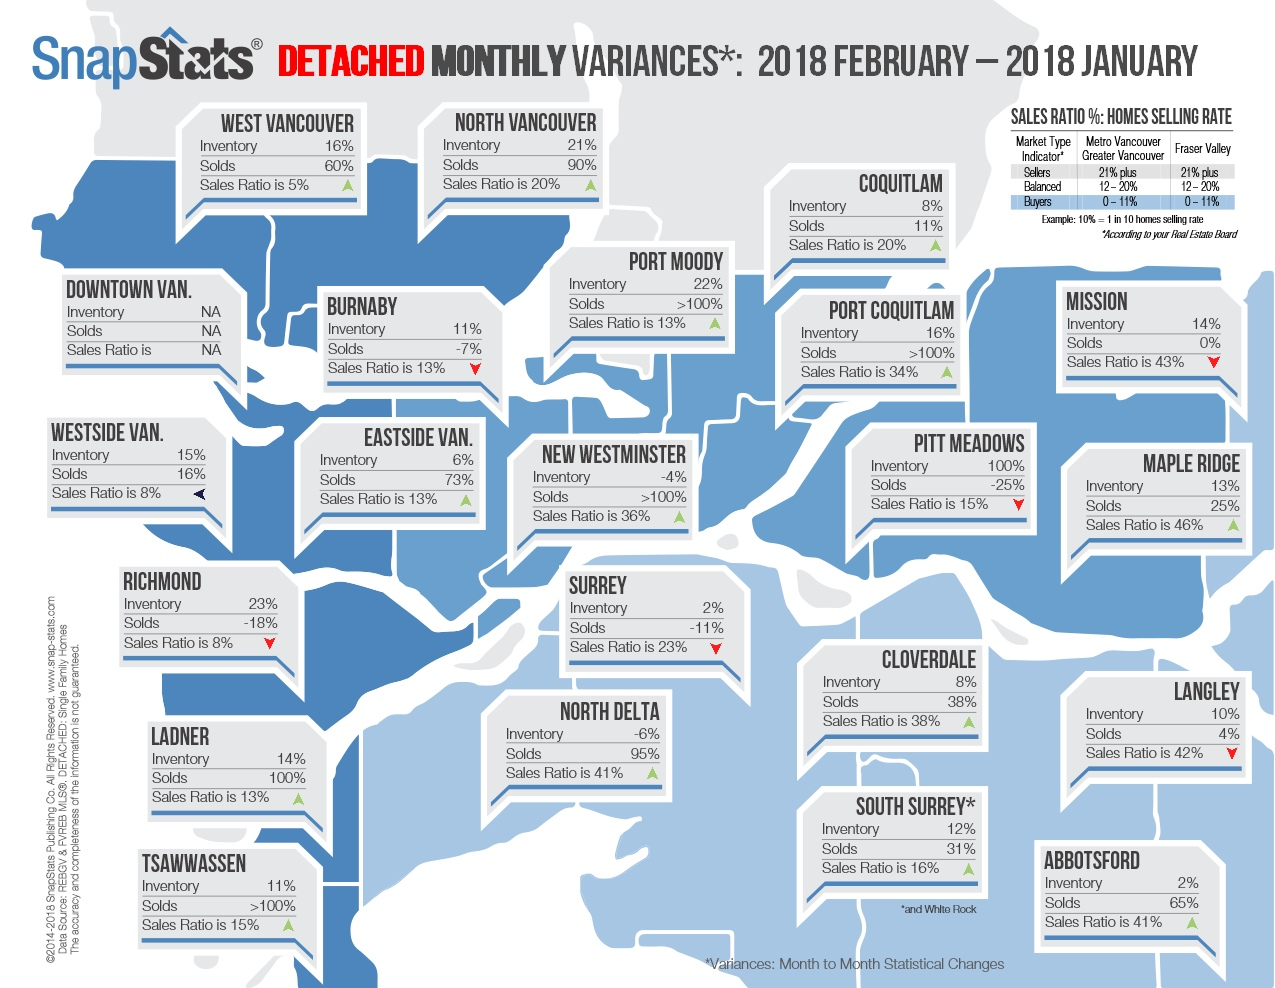 wwwsnap statscom det monthly 2018 february